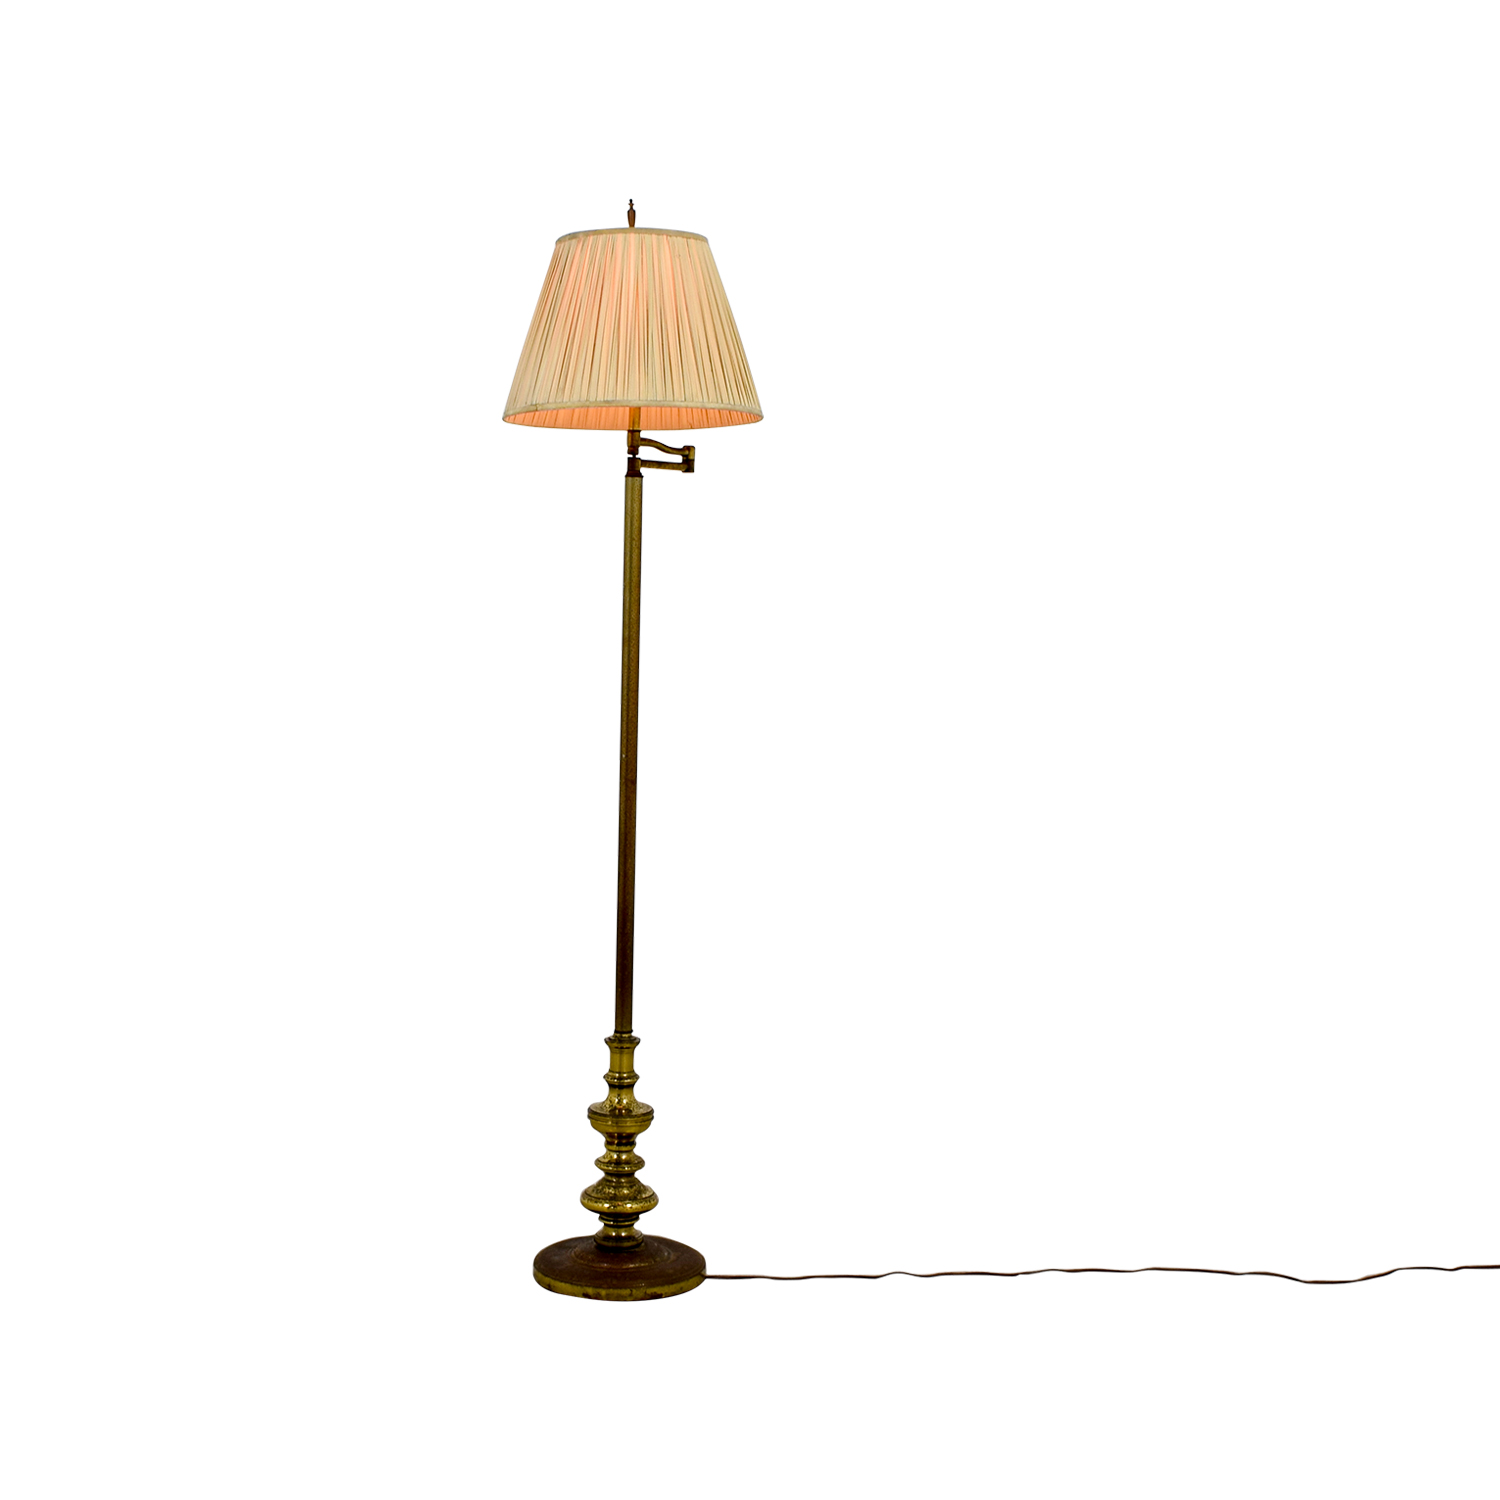 Brass Floor Lamp with Accordion Shade for sale